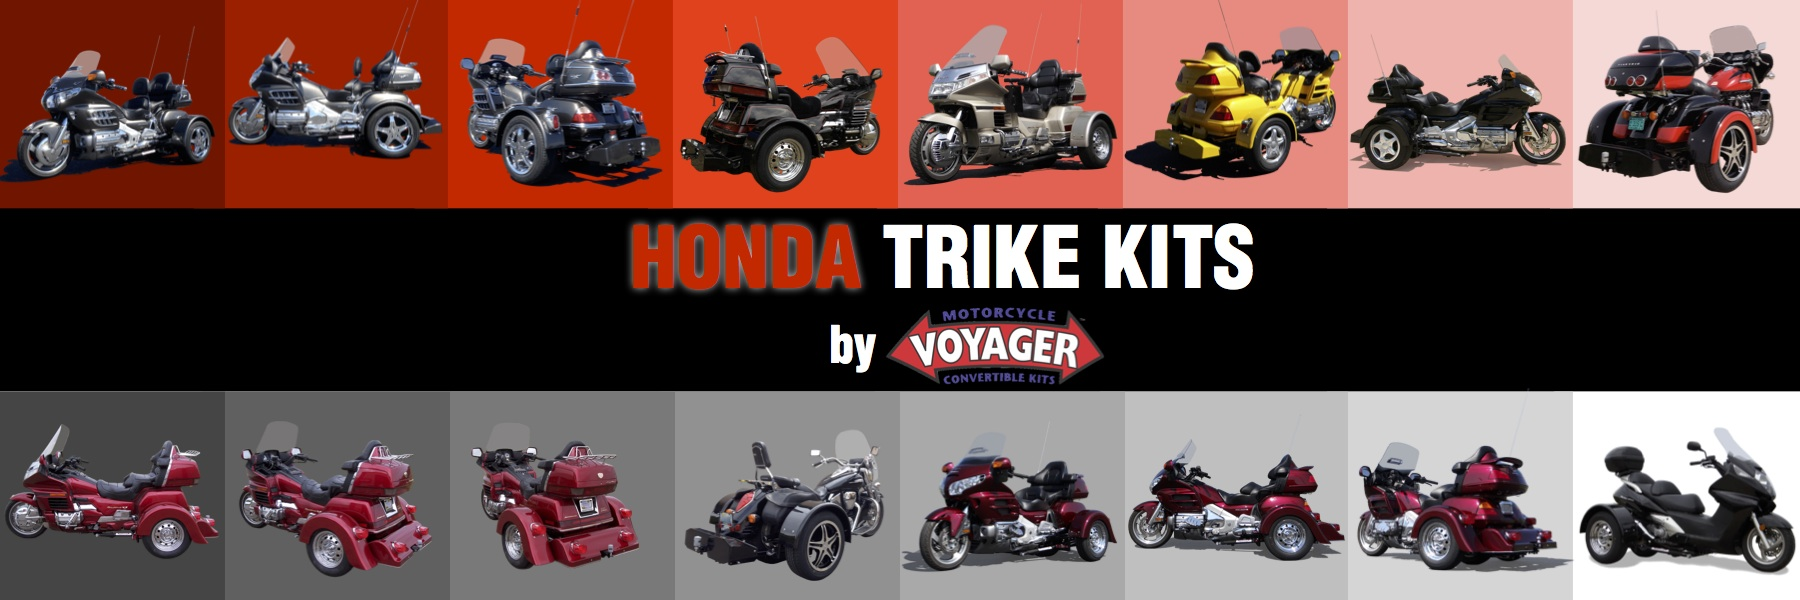 Voyager Trike Conversion Kits for Honda Motorcycles